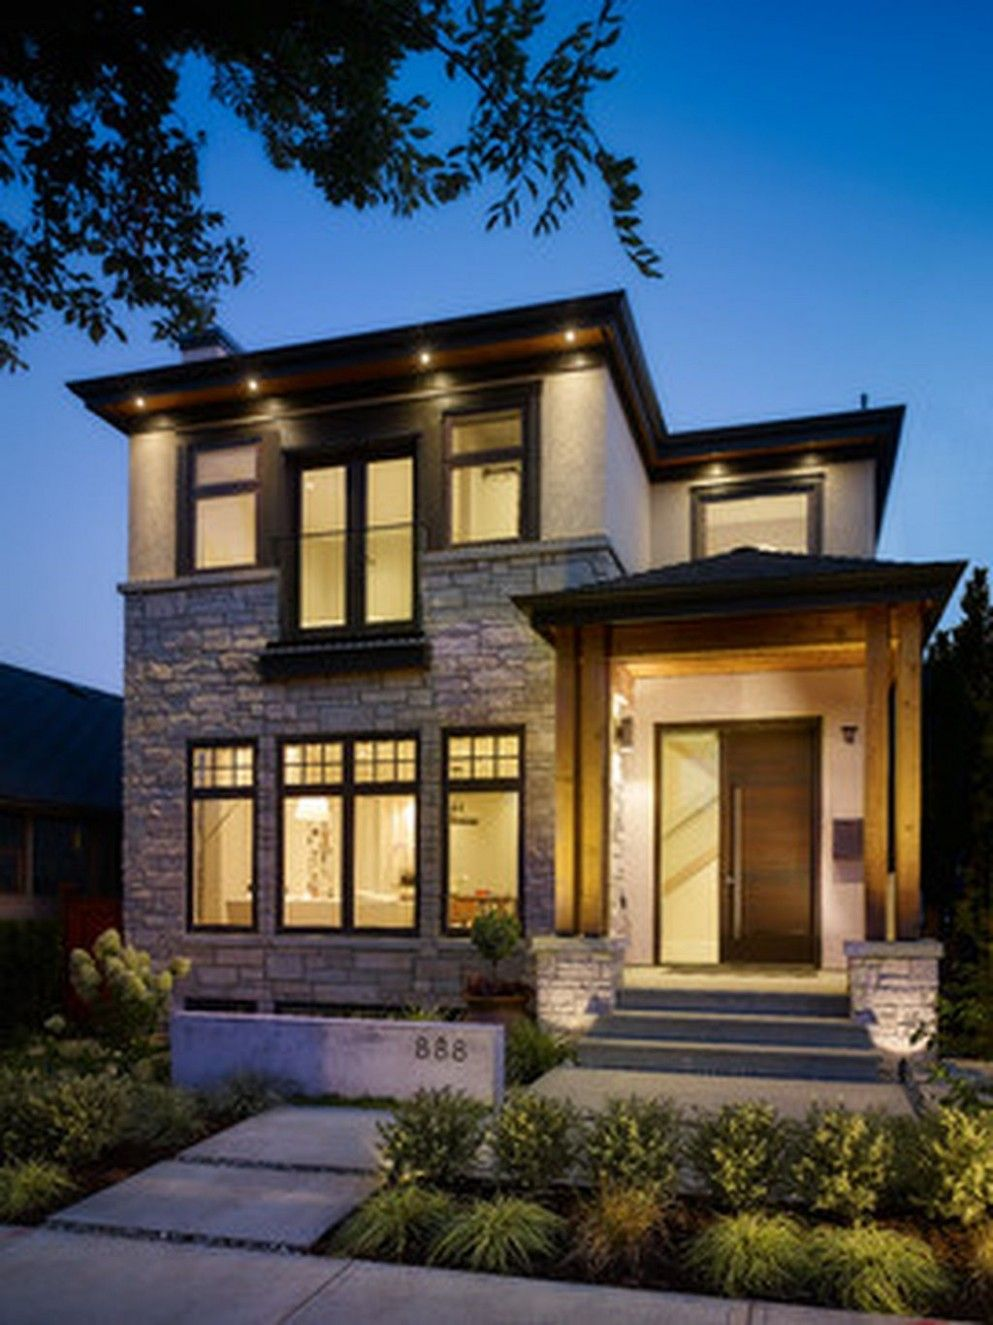 Craftsman Style House The Design That Makes You More Human In 2020 Home Design Huisplattegronden Modern